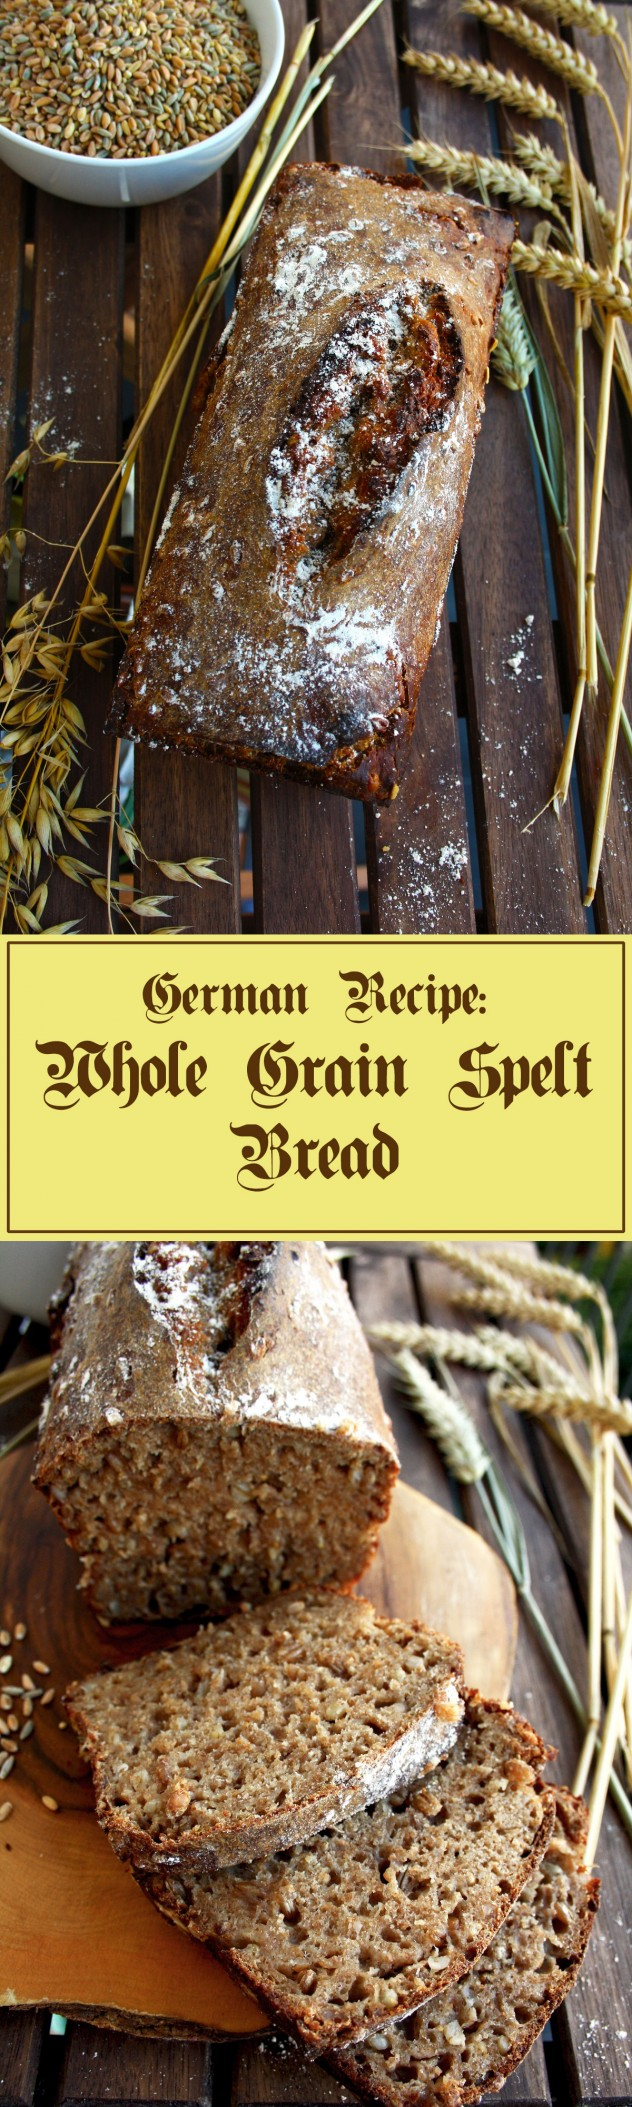 Whole Grain Spelt Bread - bake your own healthy organic whole grain spelt bread with minimum ingredients. A recipe from Germany, the land of bread!